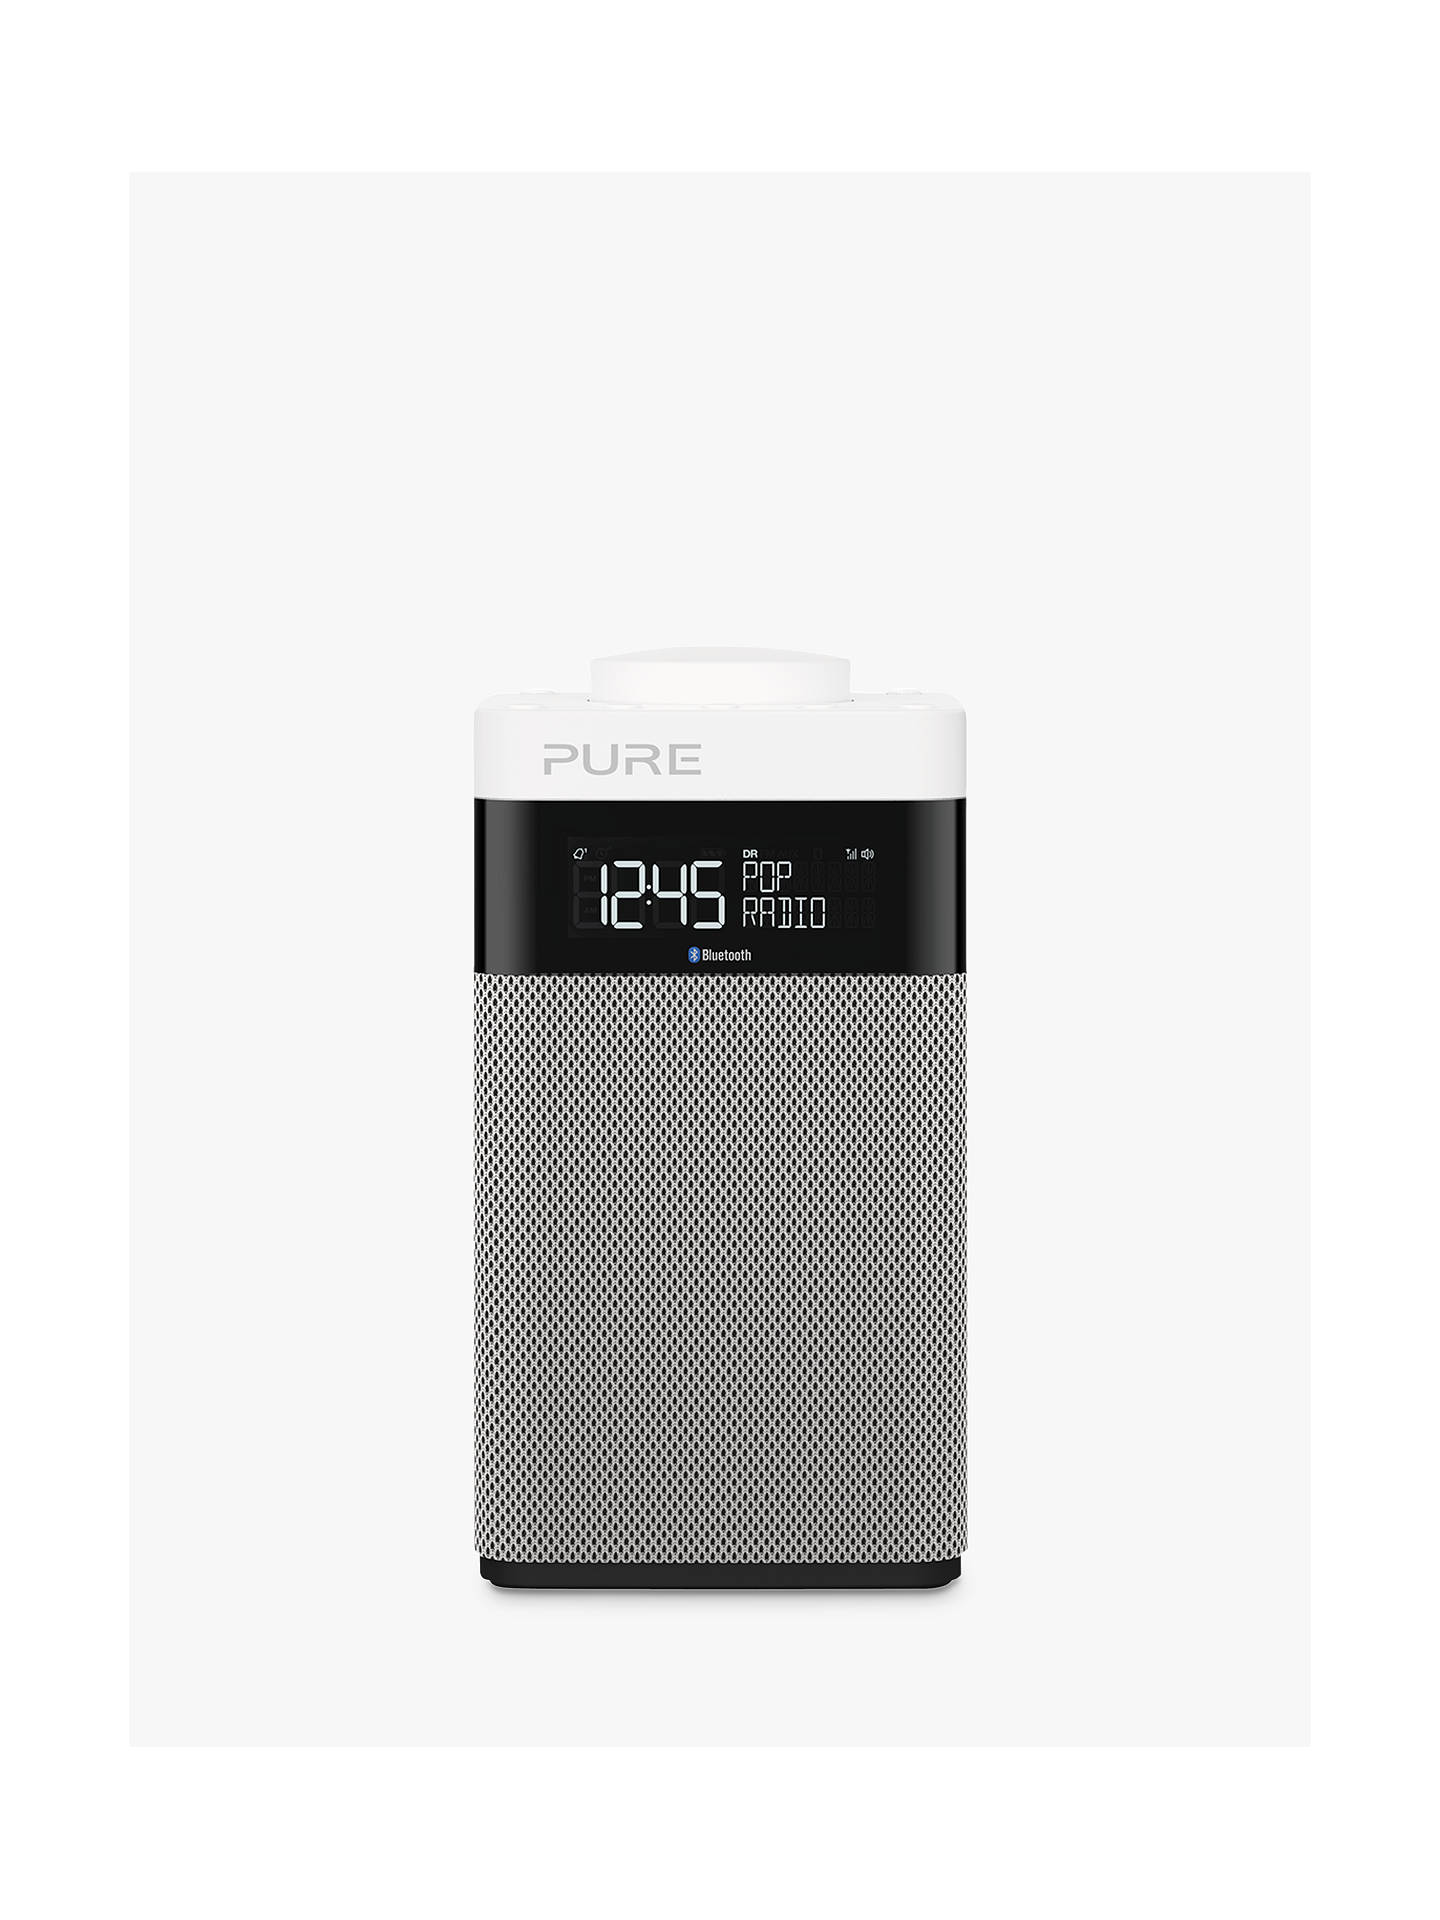 Buy Pure Pop Midi DAB/FM Bluetooth Portable Digital Radio, Grey Online at johnlewis.com